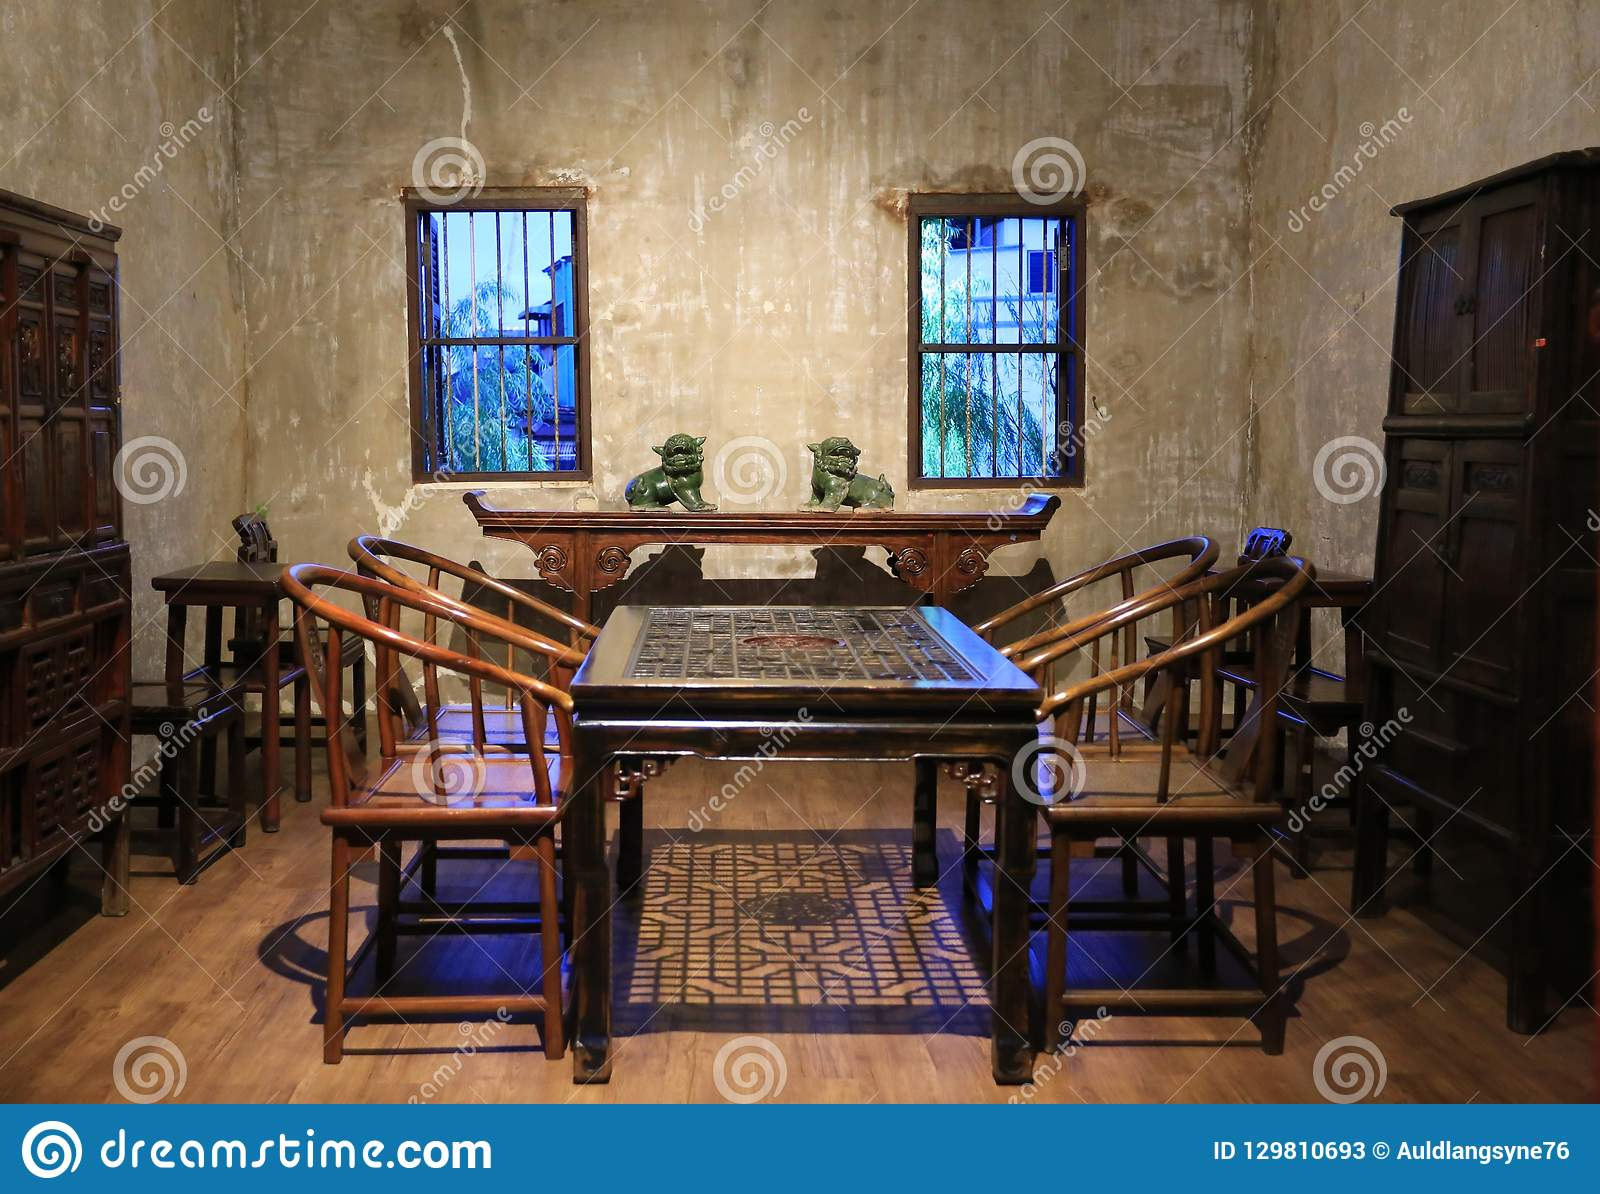 Ancient Antique Architecture Art Asia Asian Background Bangkok Beautiful Chairs Chinese Culture Decoration Design Dining Display Festive